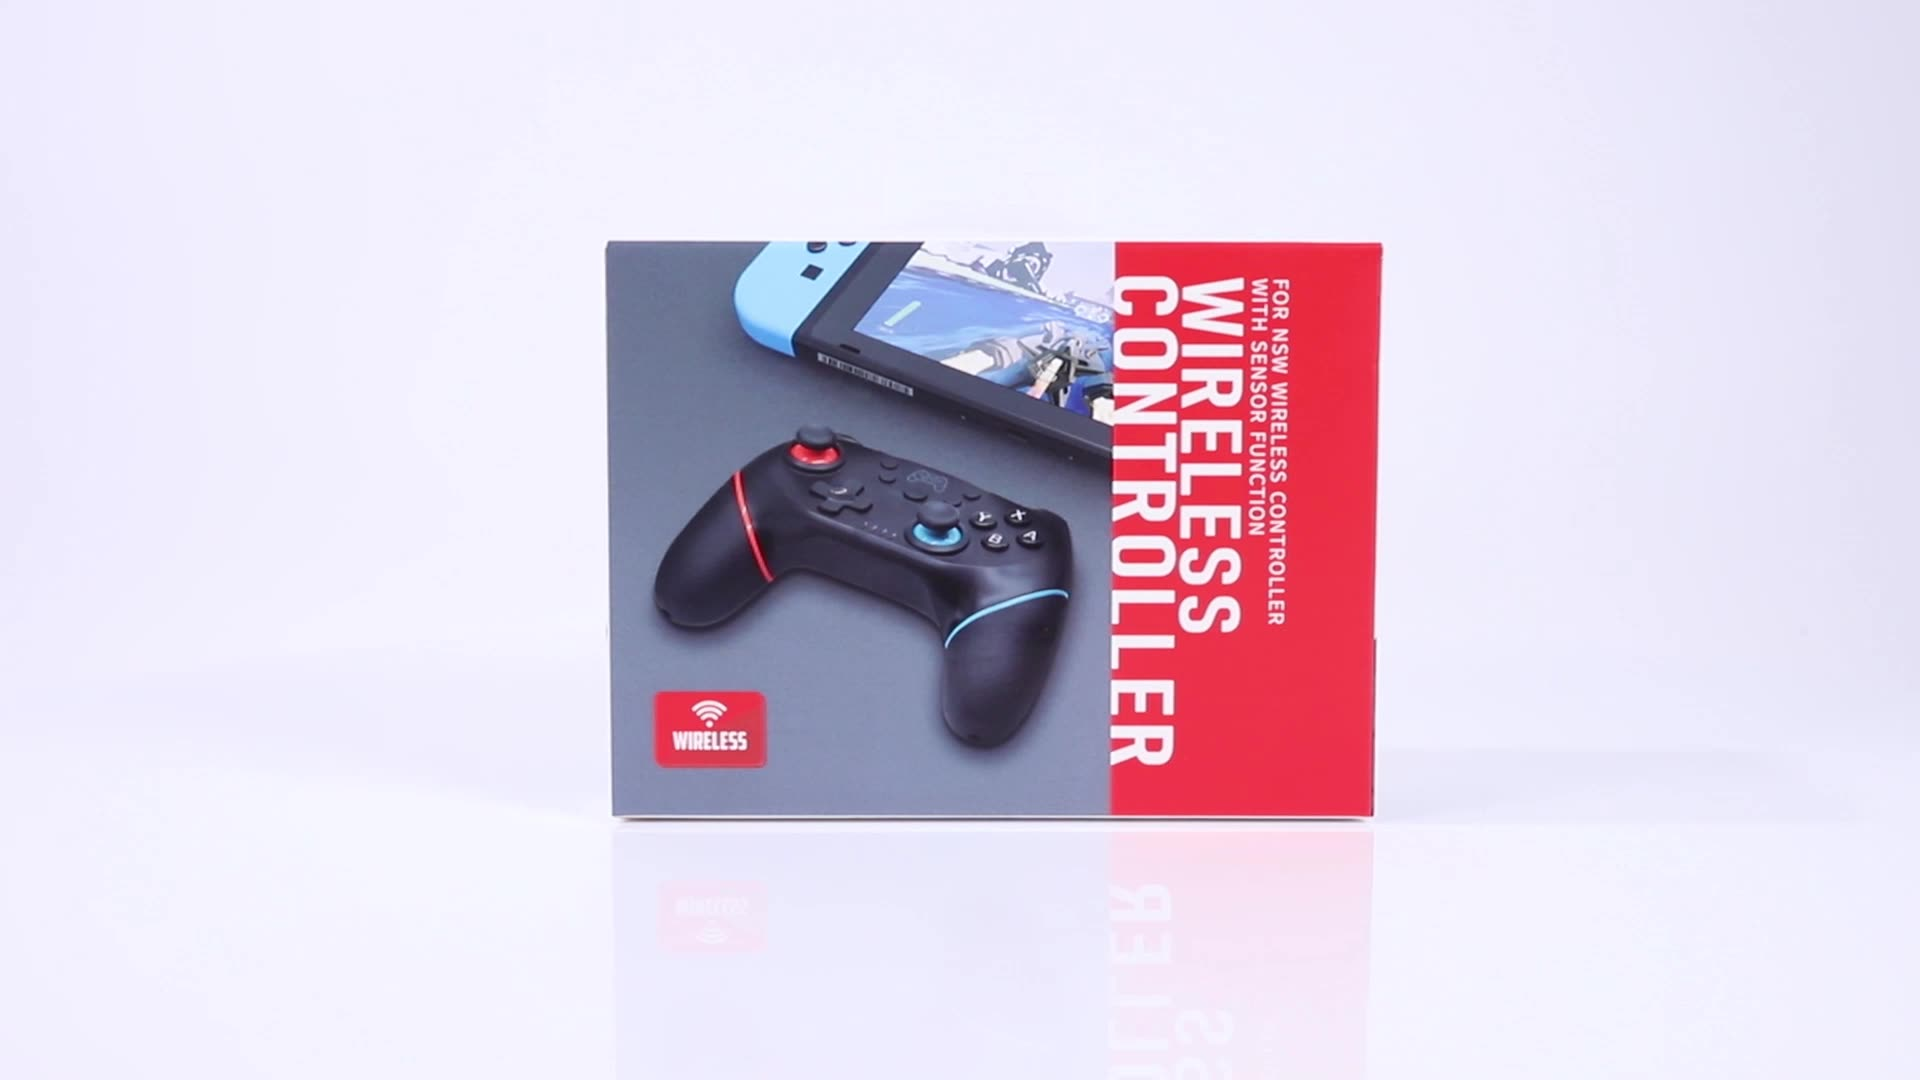 wholesale 3 in 1 gamepad For Nintendo Switch/PC/Android With Sensor Function Game controller